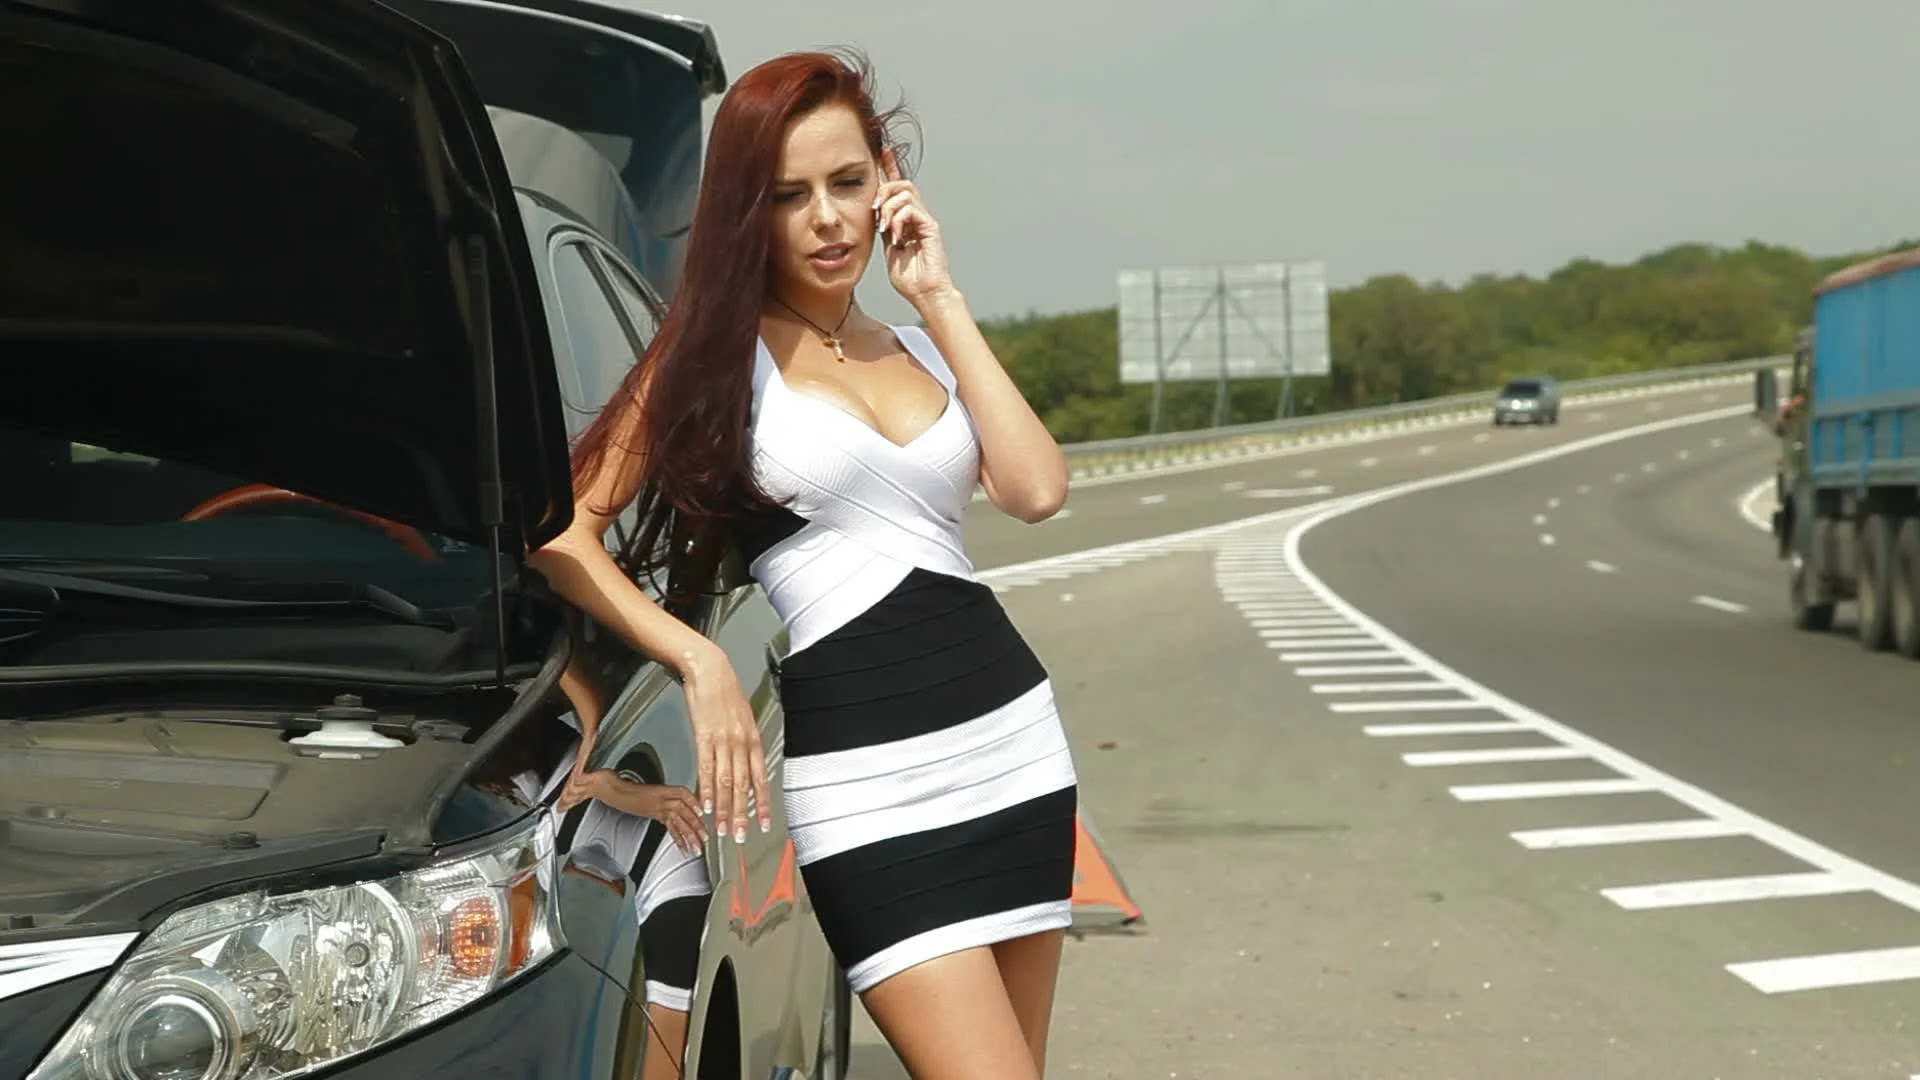 Image result for picture of a lady going to work with car broken down